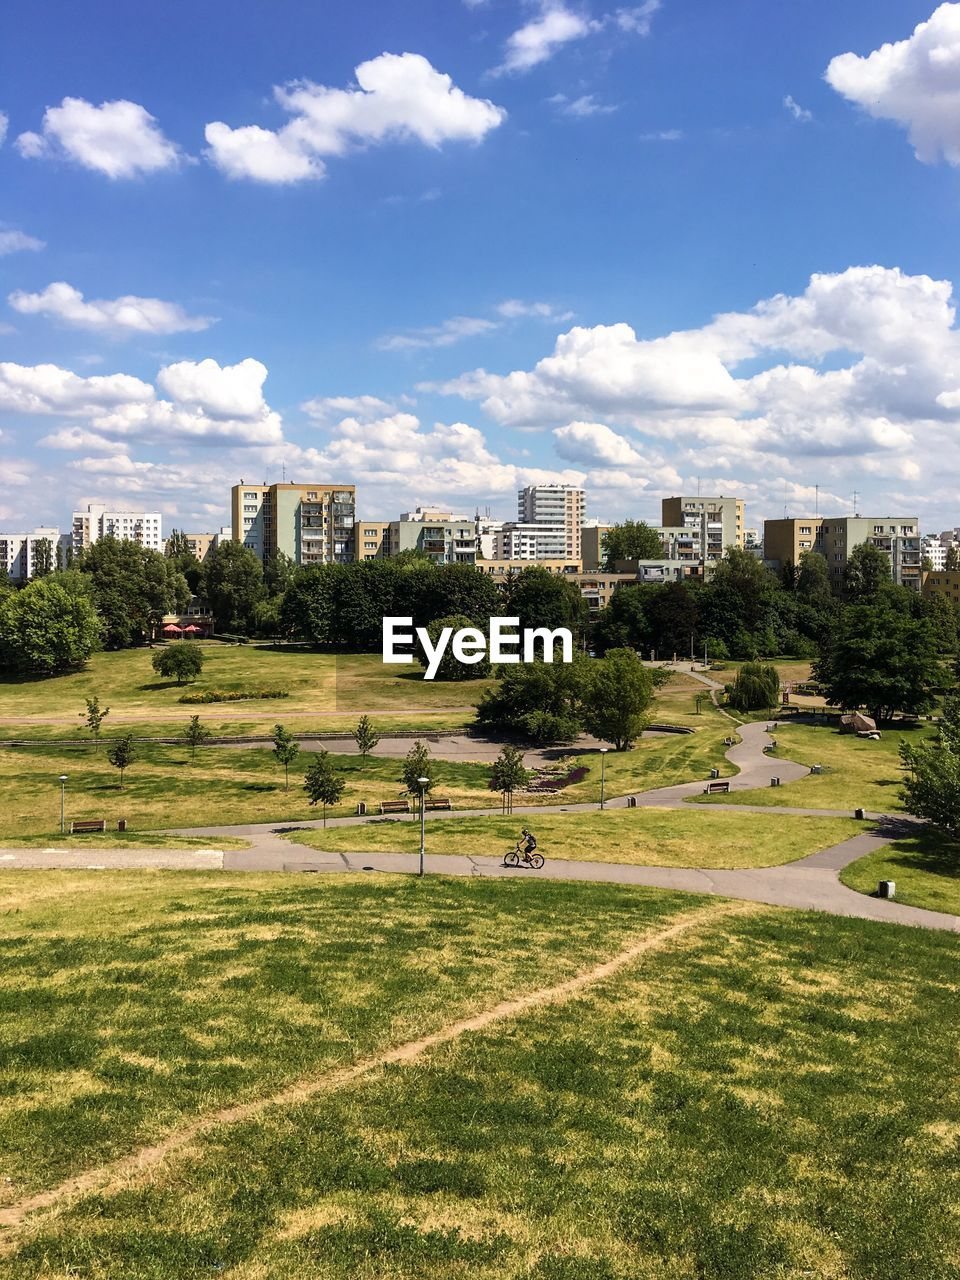 sky, grass, architecture, growth, built structure, cloud - sky, sunlight, no people, building exterior, day, green color, tree, outdoors, nature, city, skyscraper, scenics, beauty in nature, golf course